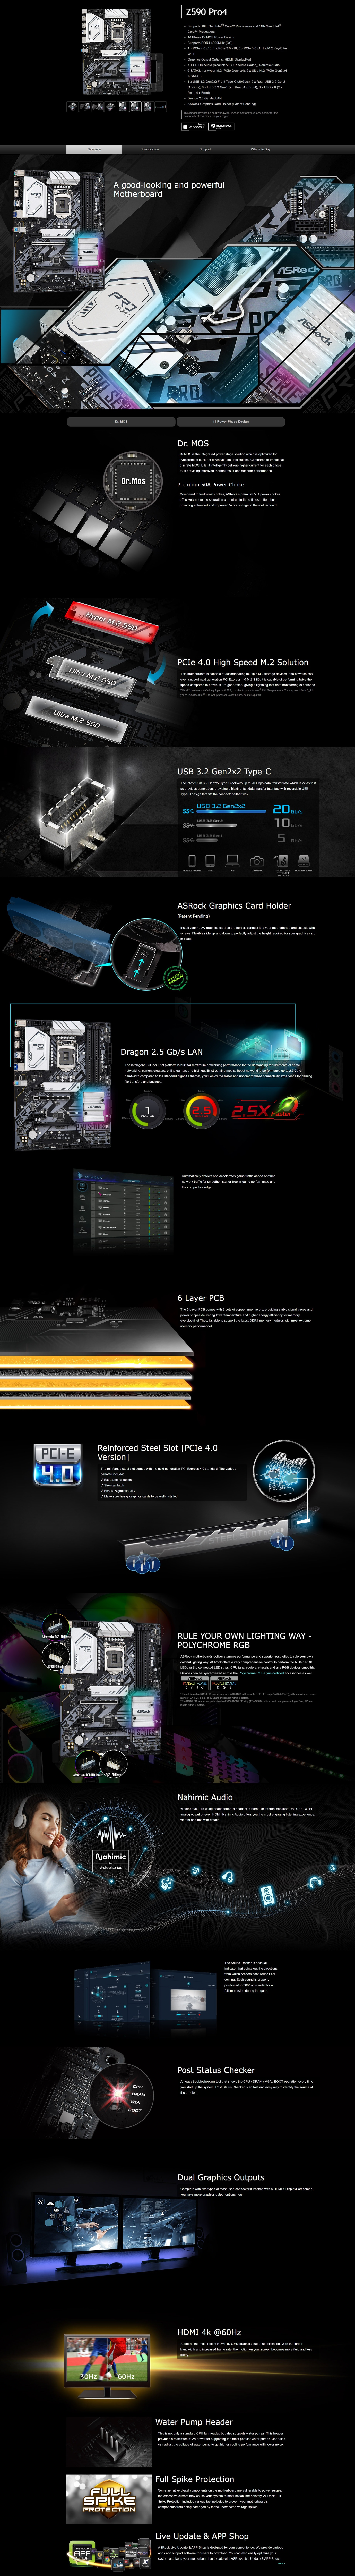 A large marketing image providing additional information about the product ASRock Z590 Pro 4 LGA1200 ATX Desktop Motherboard - Additional alt info not provided